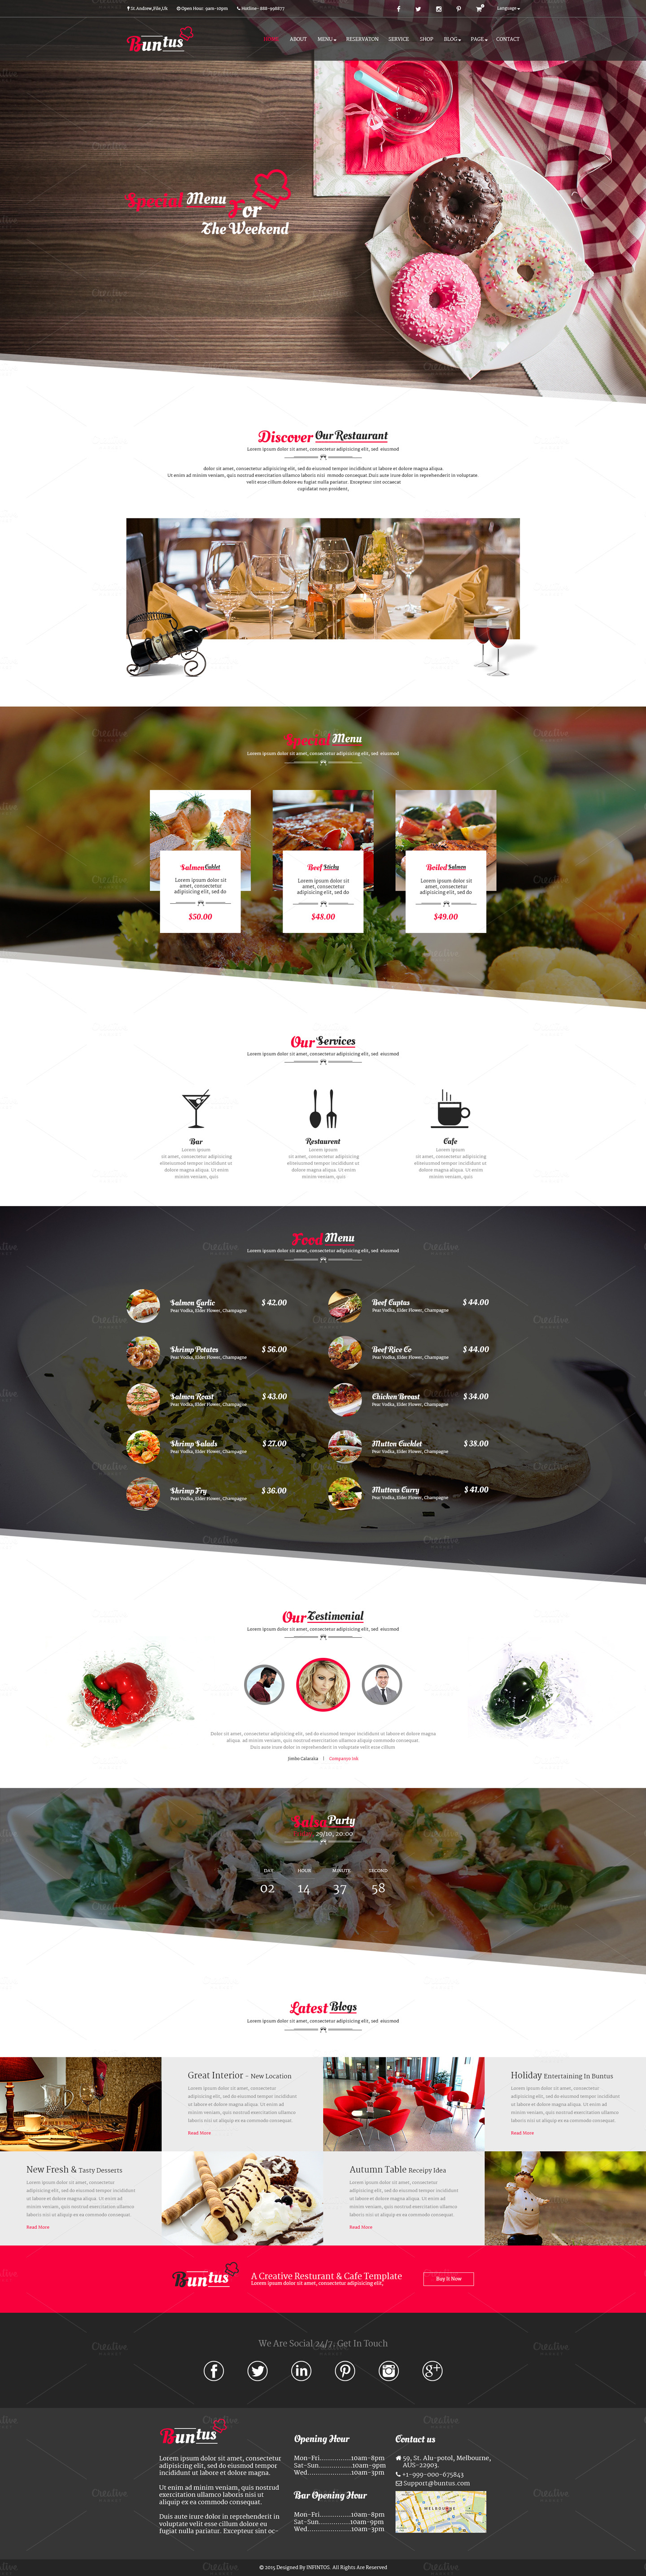 Buntus-Food-Restaurant-PSD-Template